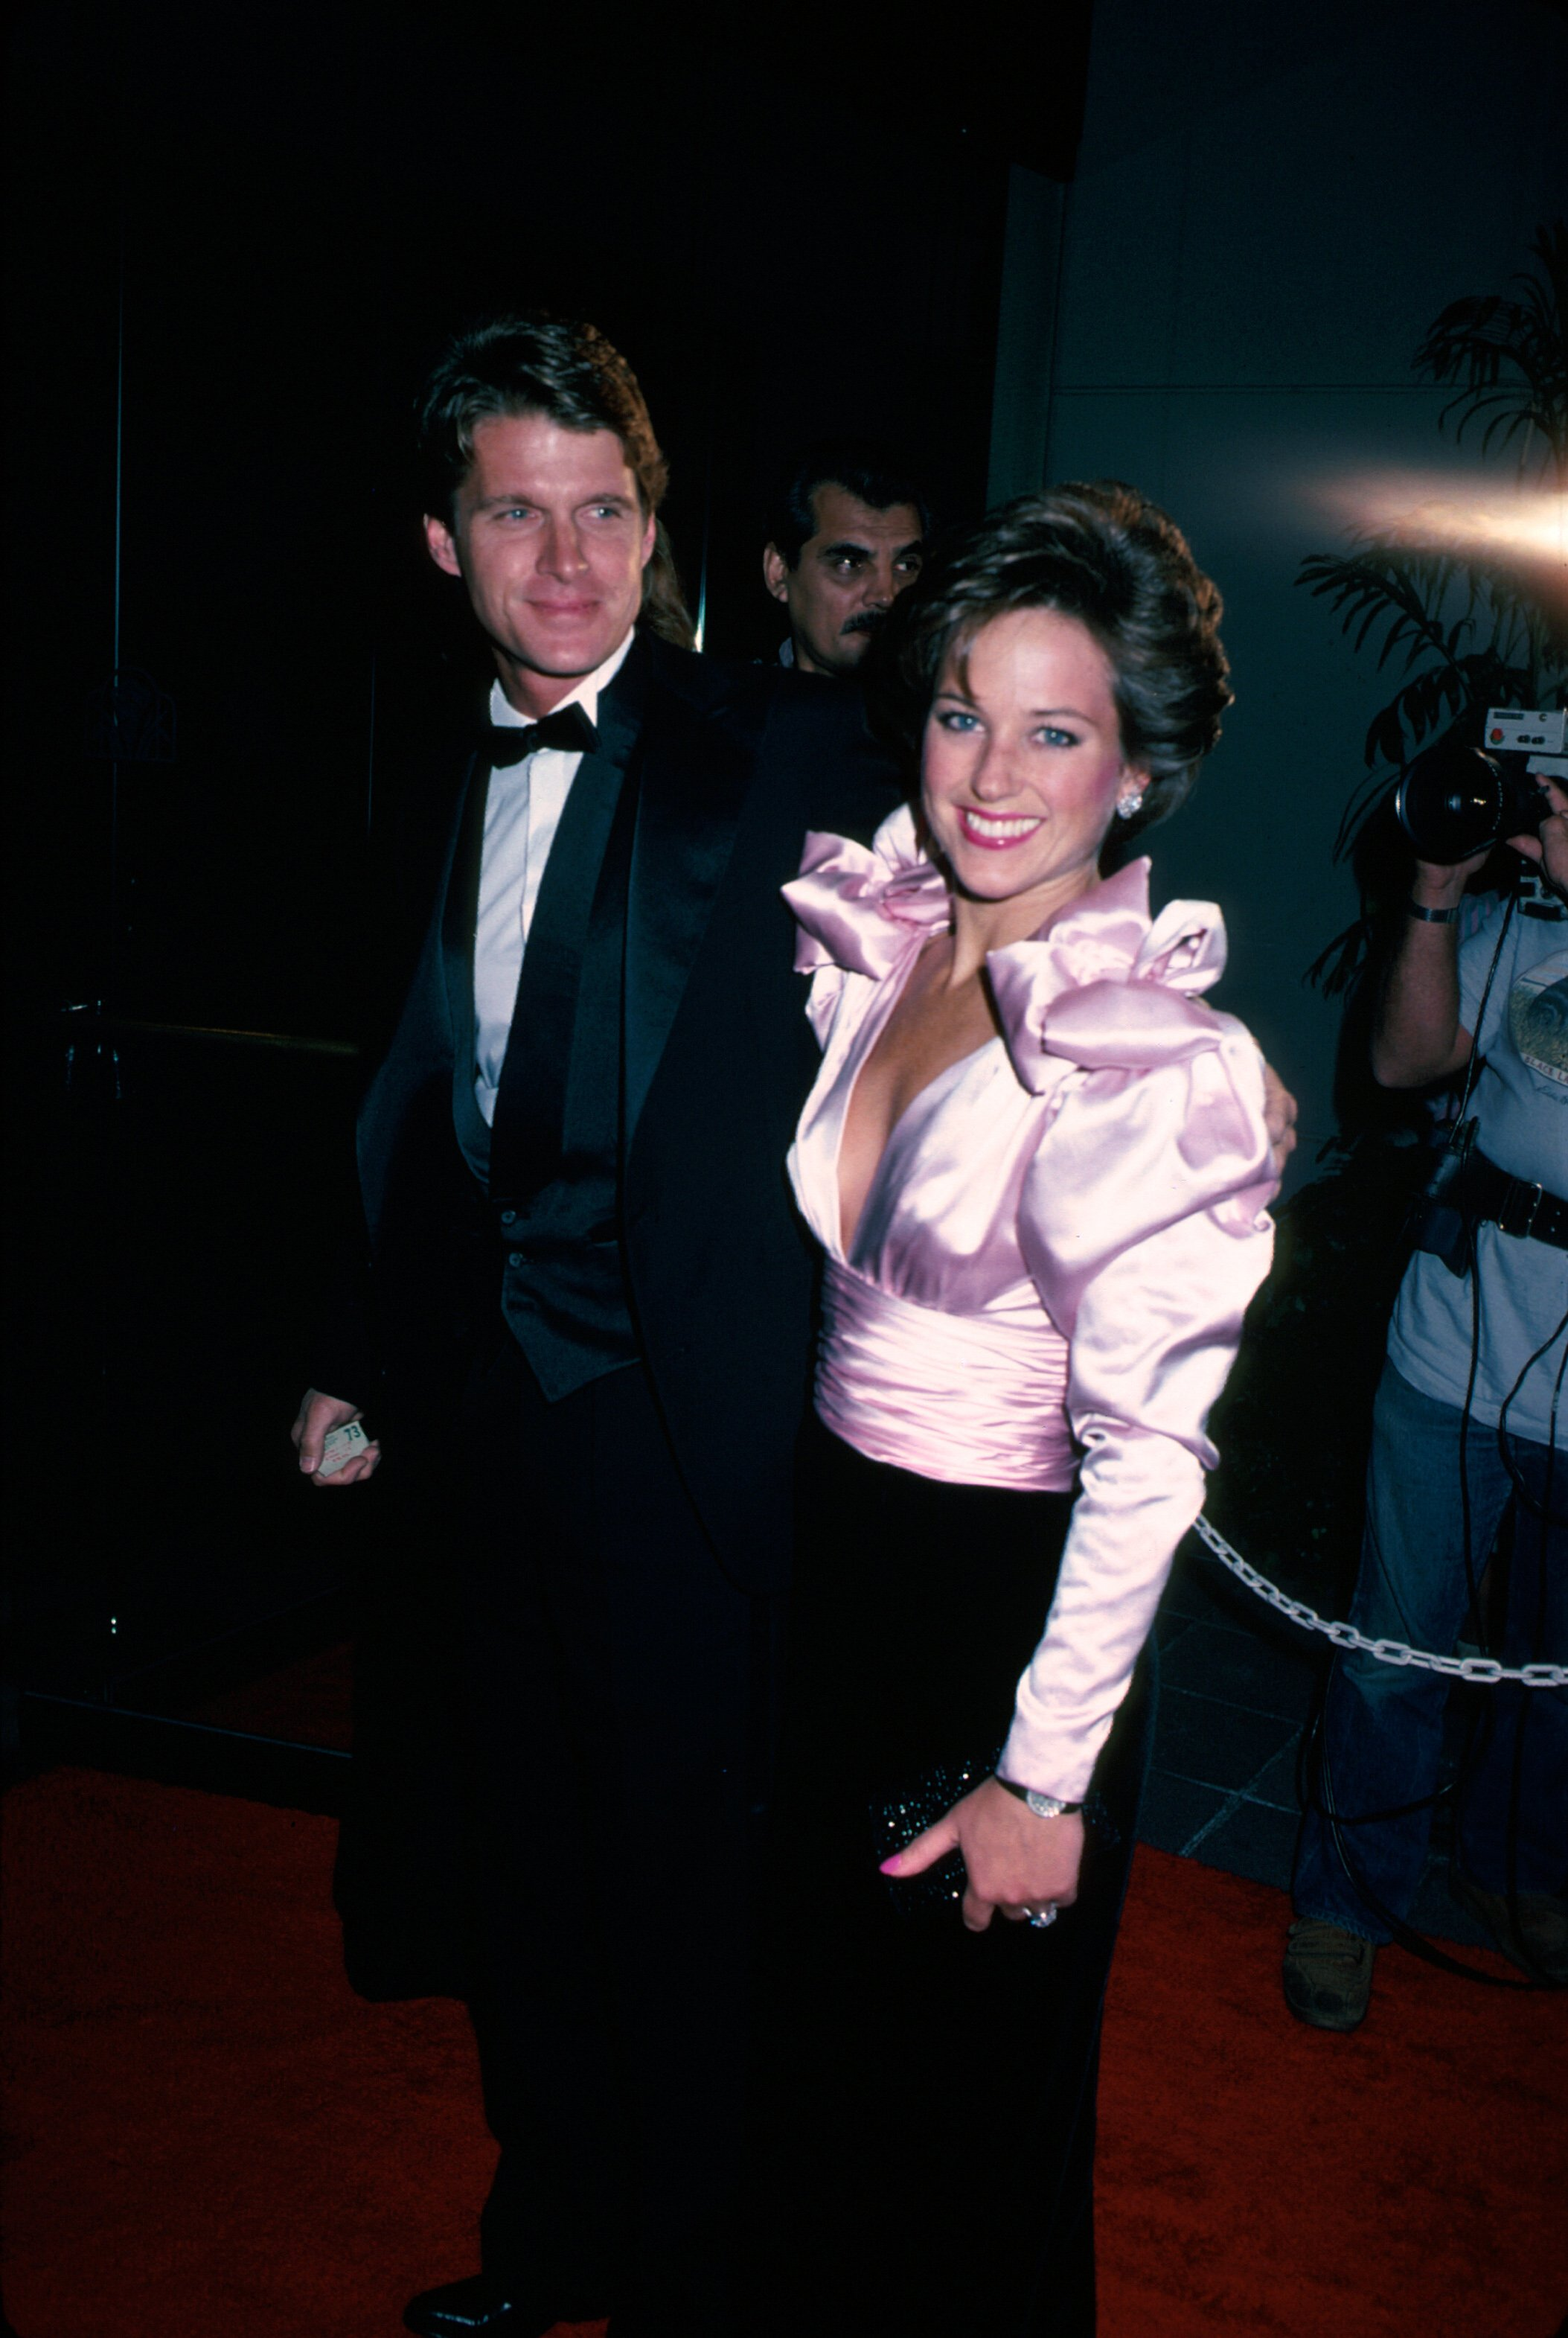 Dean Paul Martin and Olympic figure skater Dorothy Hamill circe 1983 | Source: Getty Images